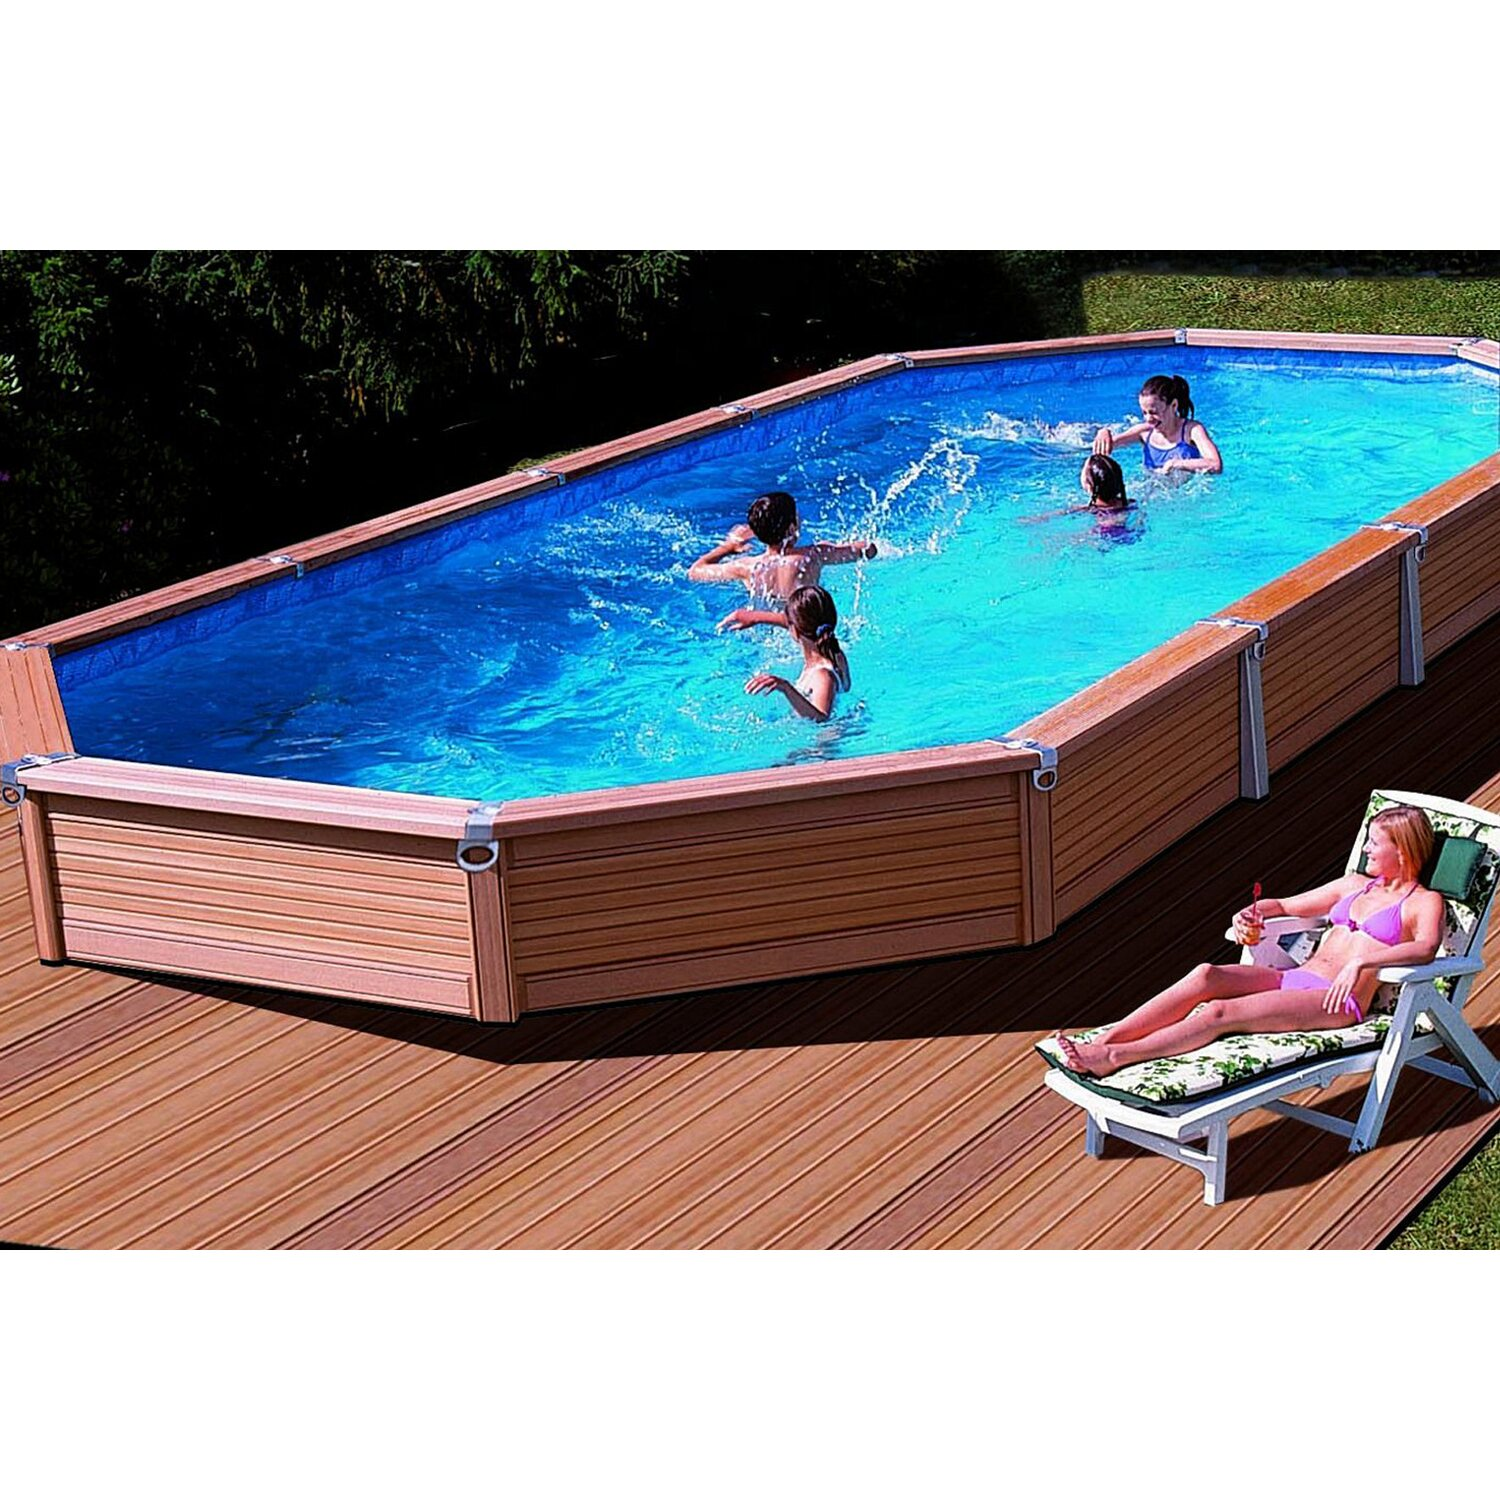 Summer fun pool set azteck einbaubecken ovalform 560 cm x for Pool stahlwand eckig